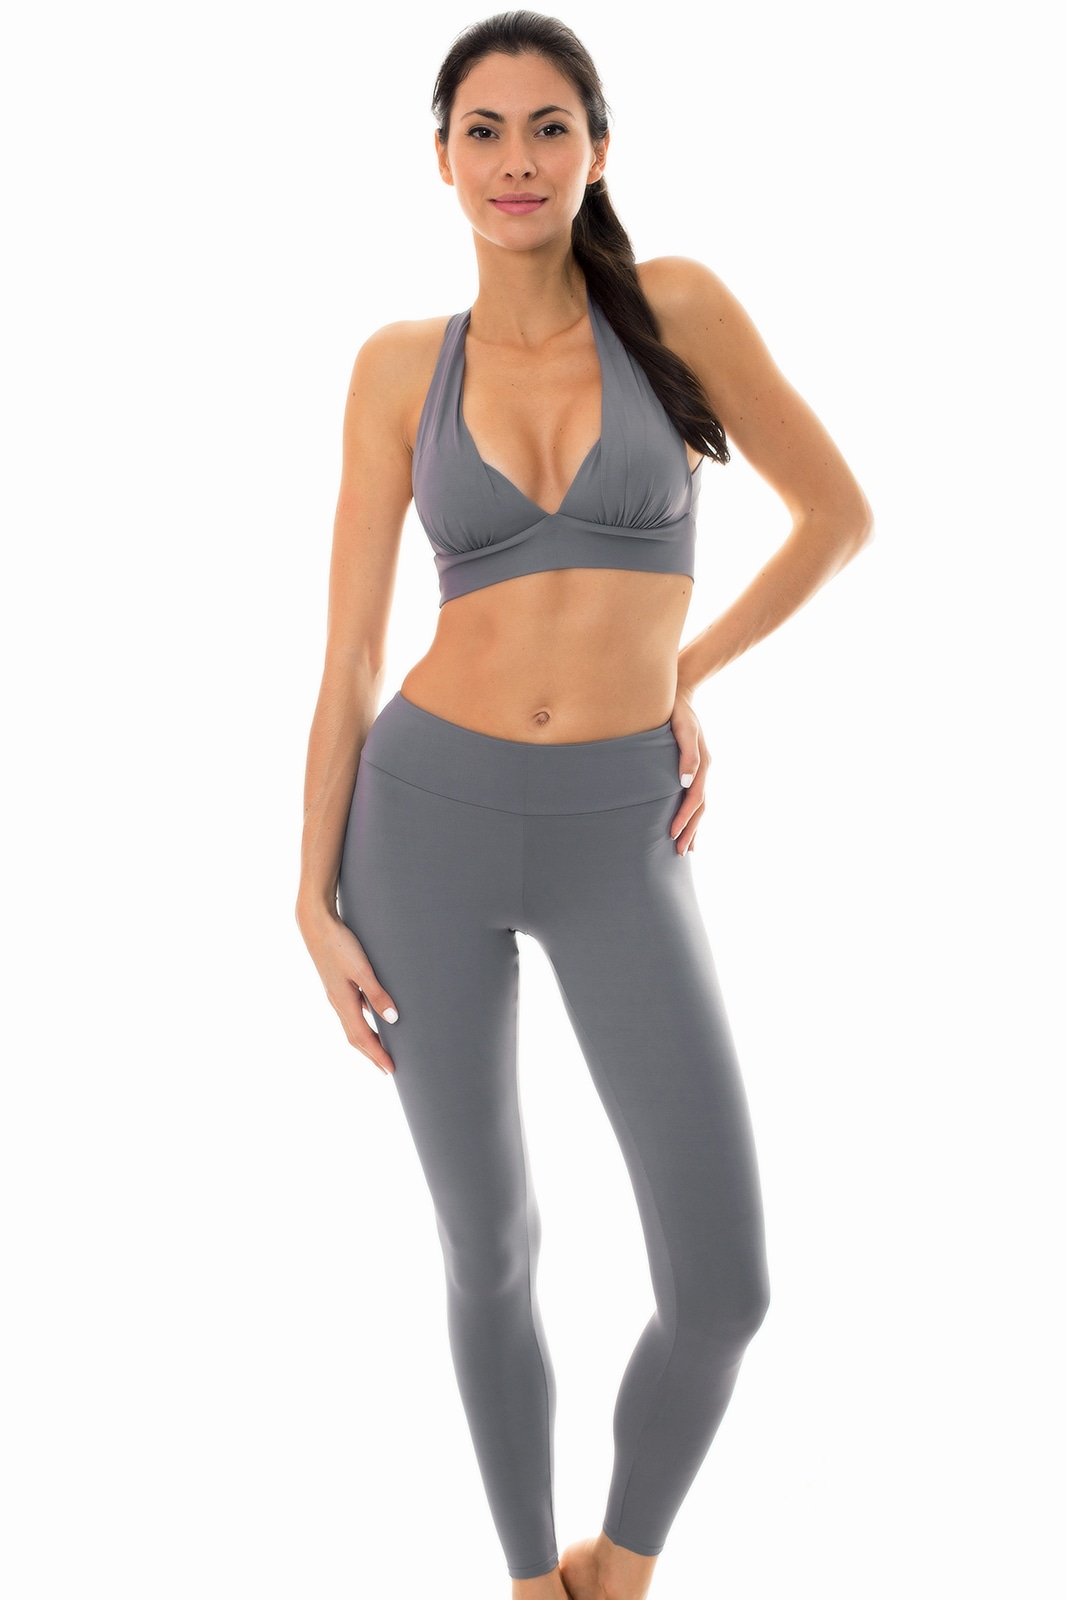 a4ff88a3d4f1c Two Piece Swimwear Grey Sports Bra And Leggings Set - Nz Gris Fitness